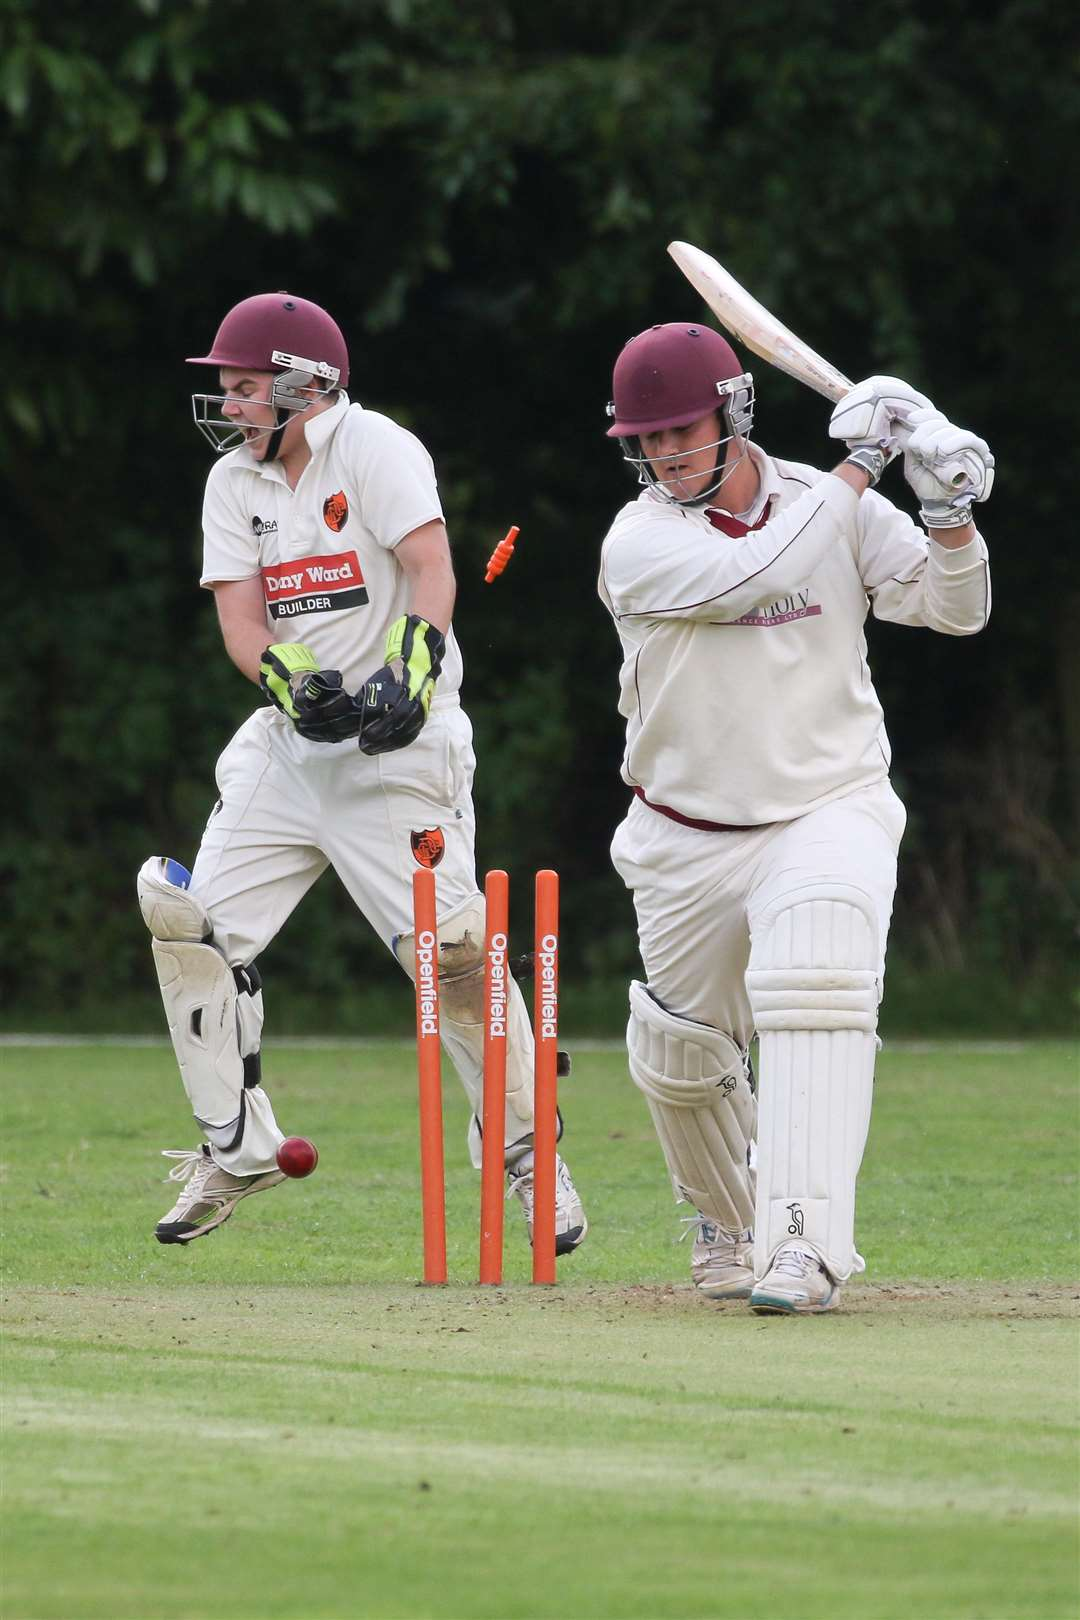 BAILS FLY: Old Buckenham batsman Ben Sheering is bowled by Sam Hunt (Picture: Gary Donnison)